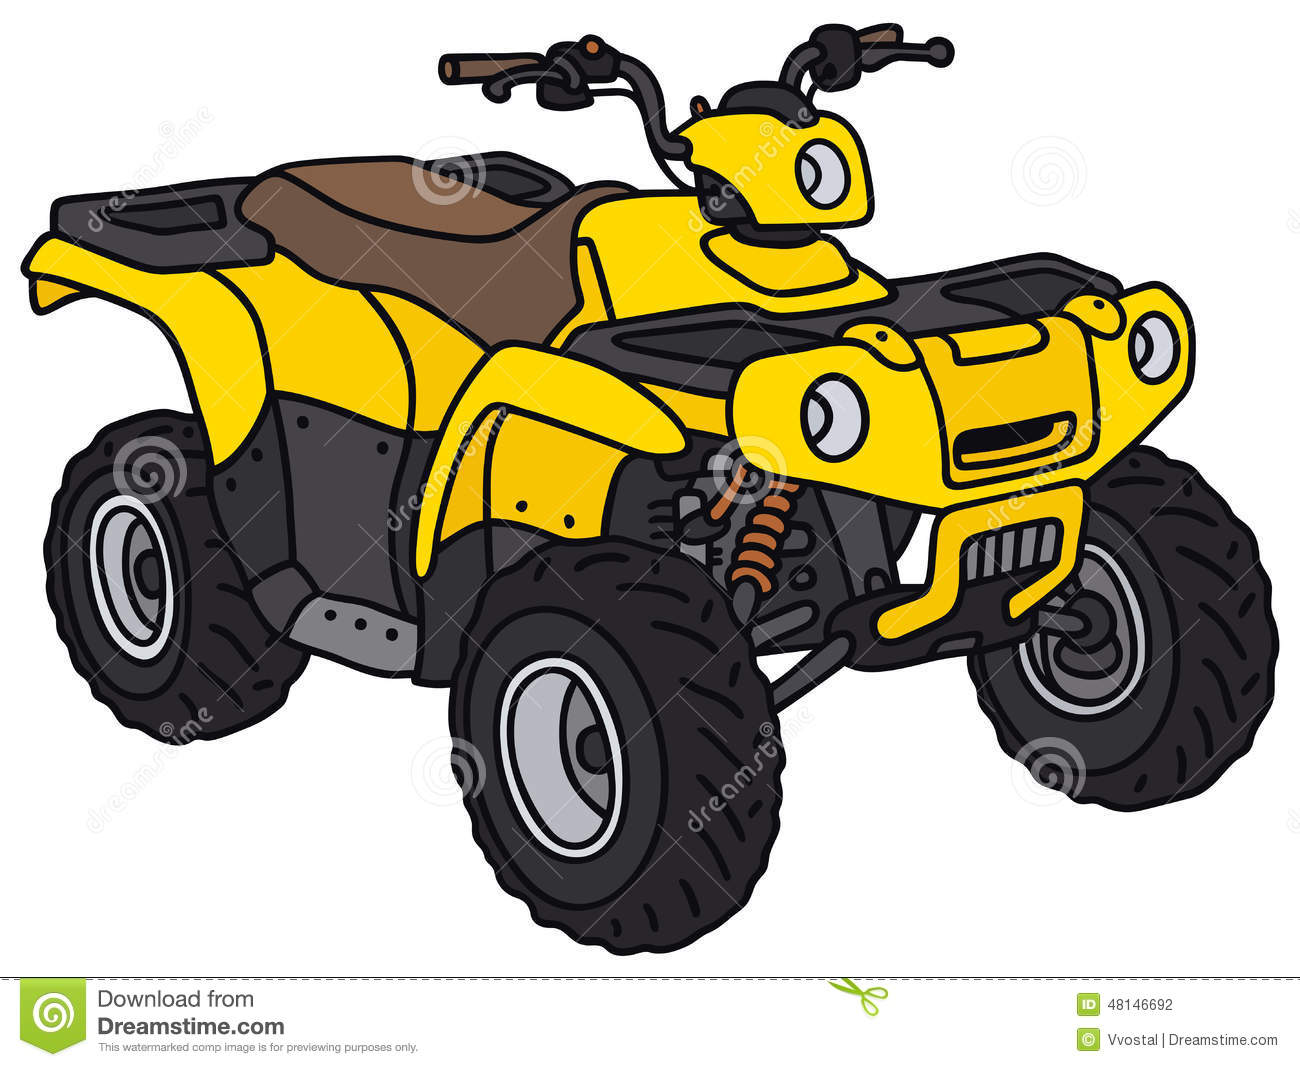 Atv clipart images.